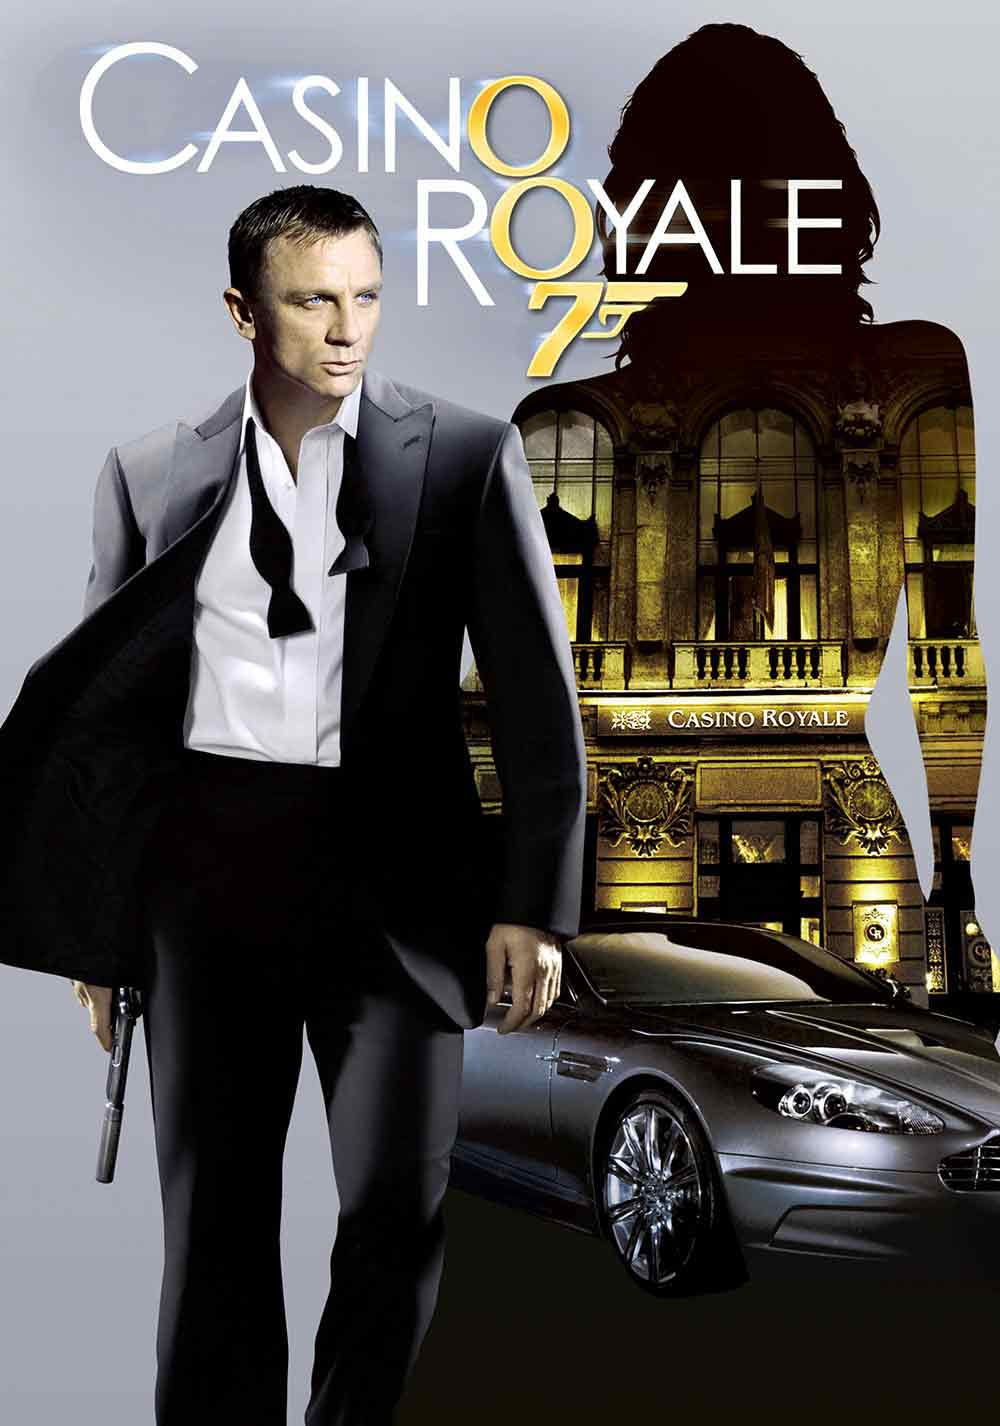 hbo catalogo Casino Royale